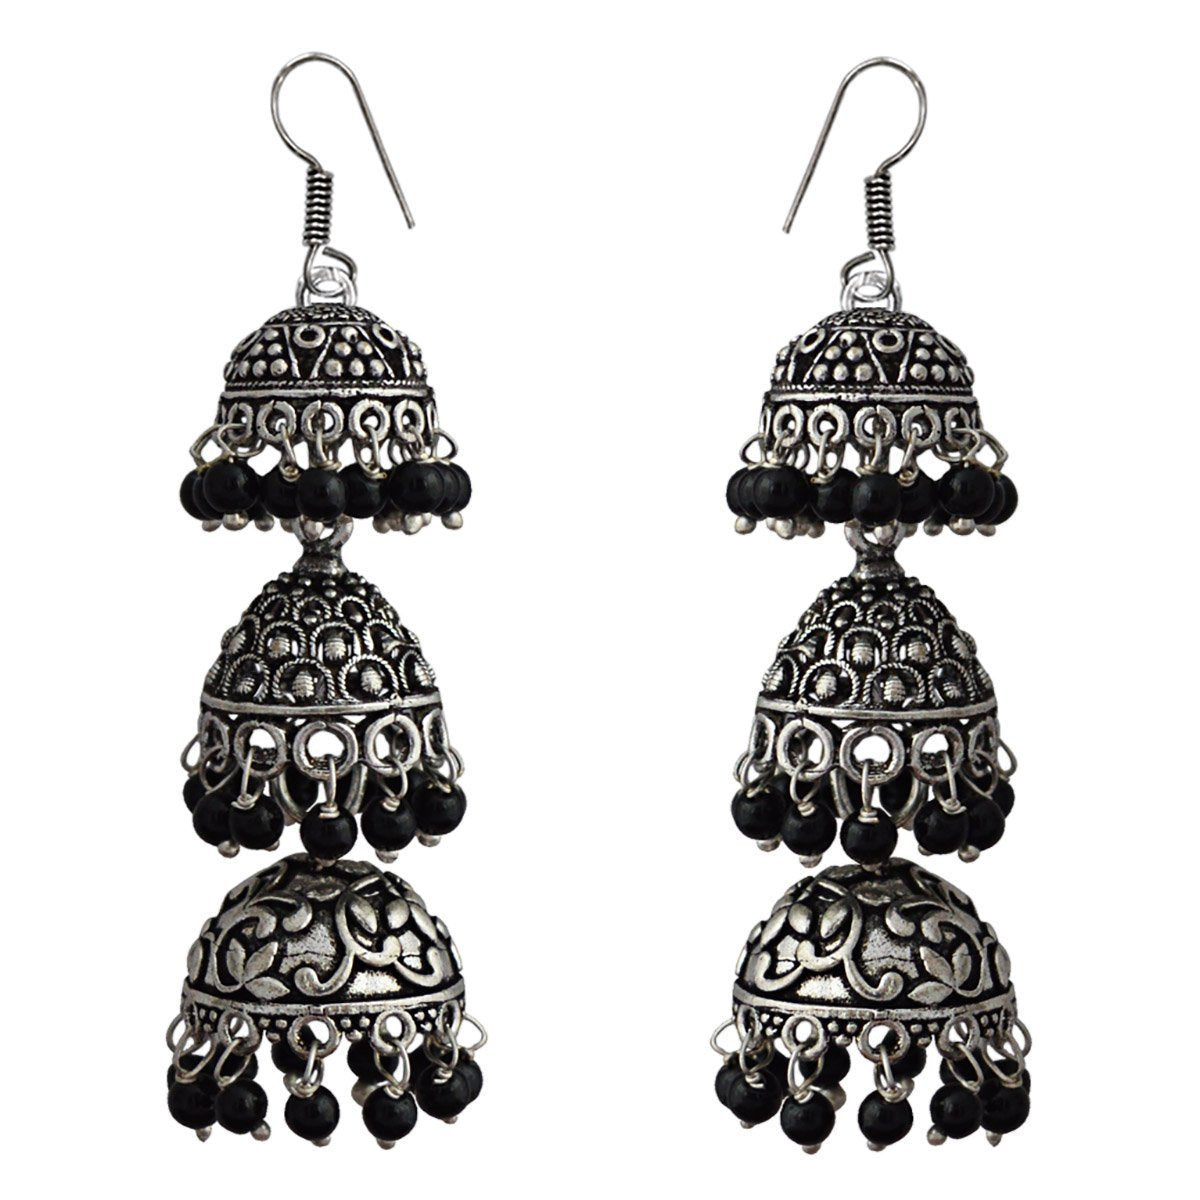 Oxidized German Silver Tribal Designer 3 layered Tokri Jhumka Earring